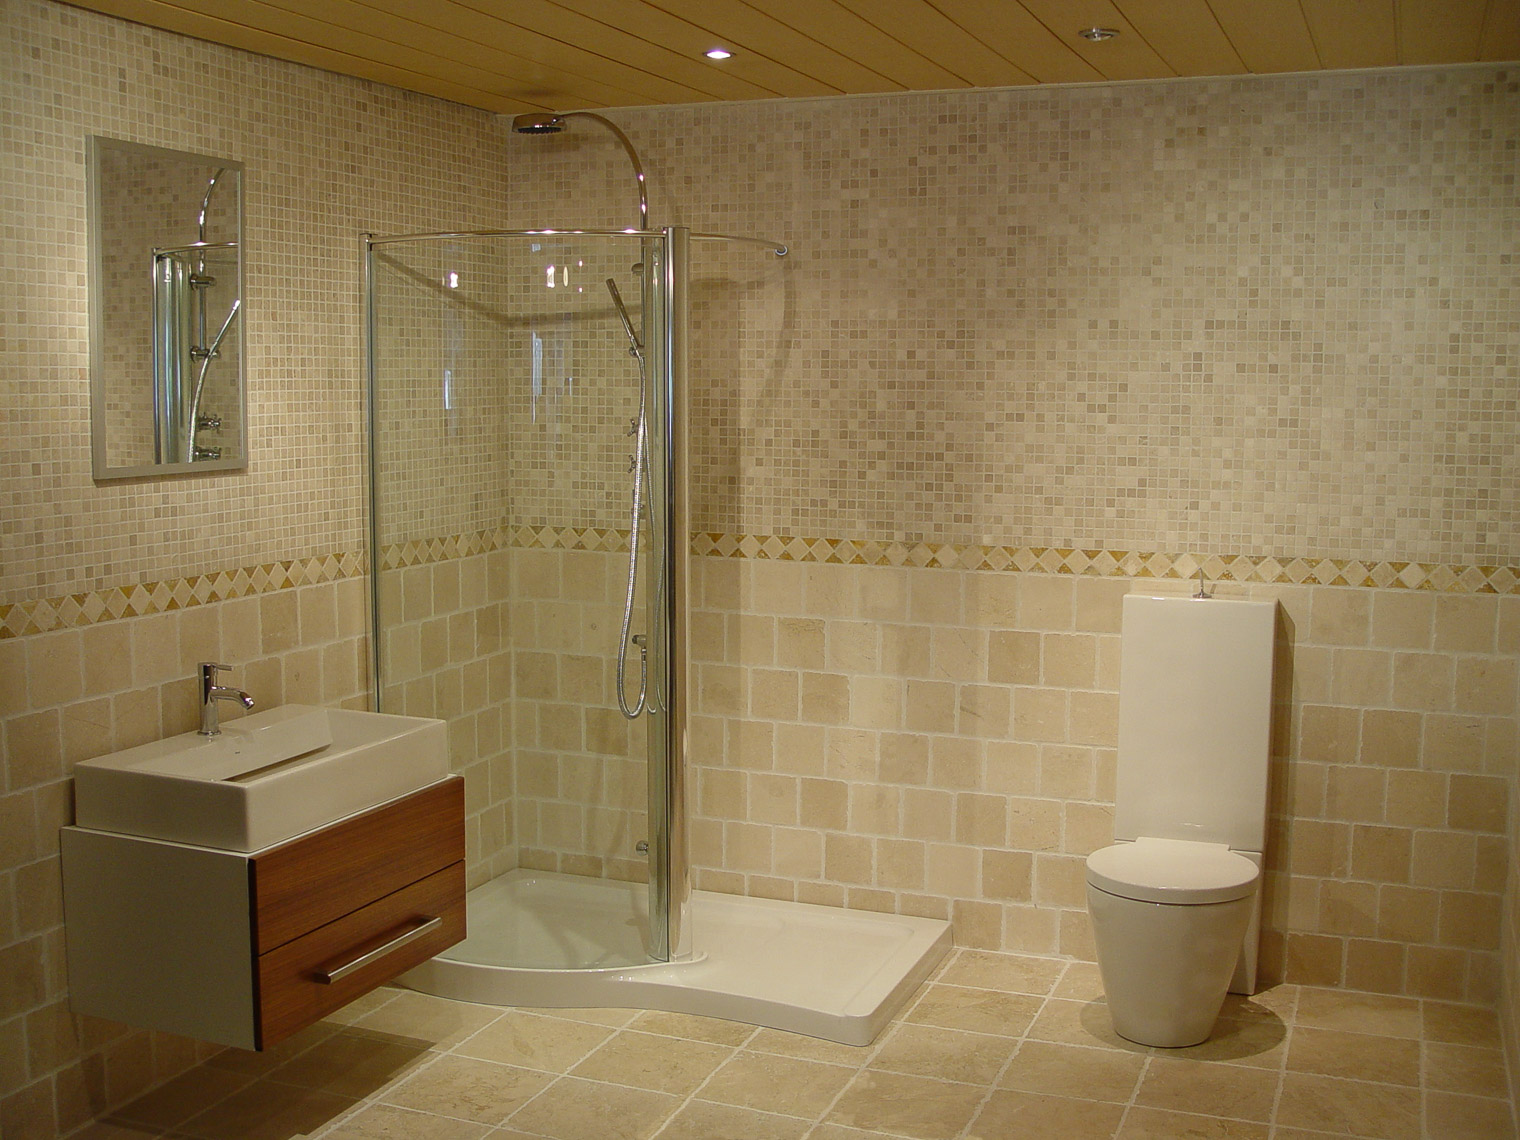 014-tile-bathroom-ideas